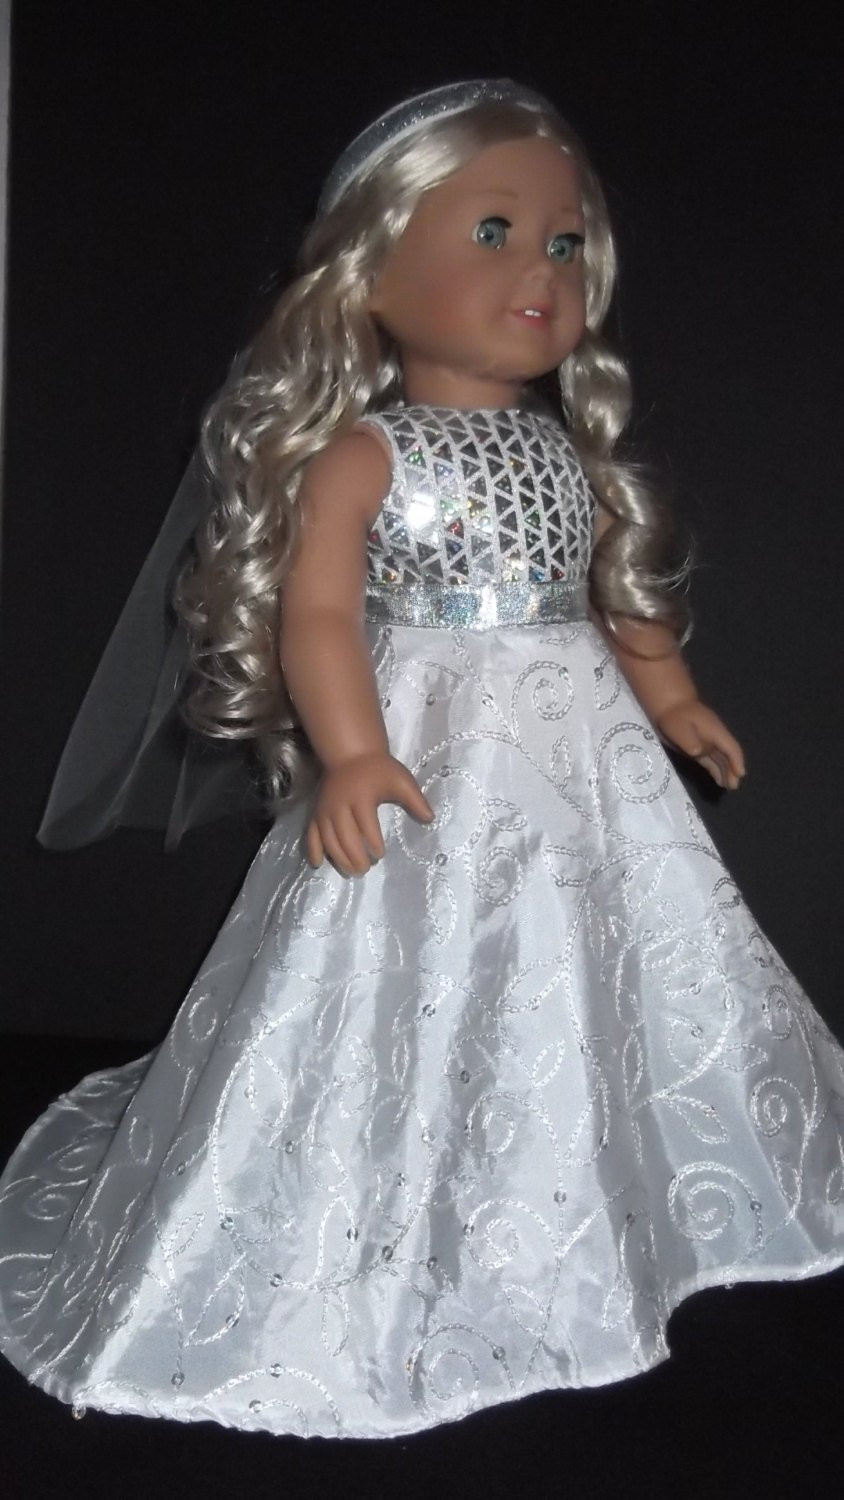 Best Of American Girl Doll Clothes Wedding Gown and Veil 257 American Girl Doll Wedding Dress Of Elegant Handmade 18 Doll Wedding Dress Five Piece by Creationsbynoveda American Girl Doll Wedding Dress